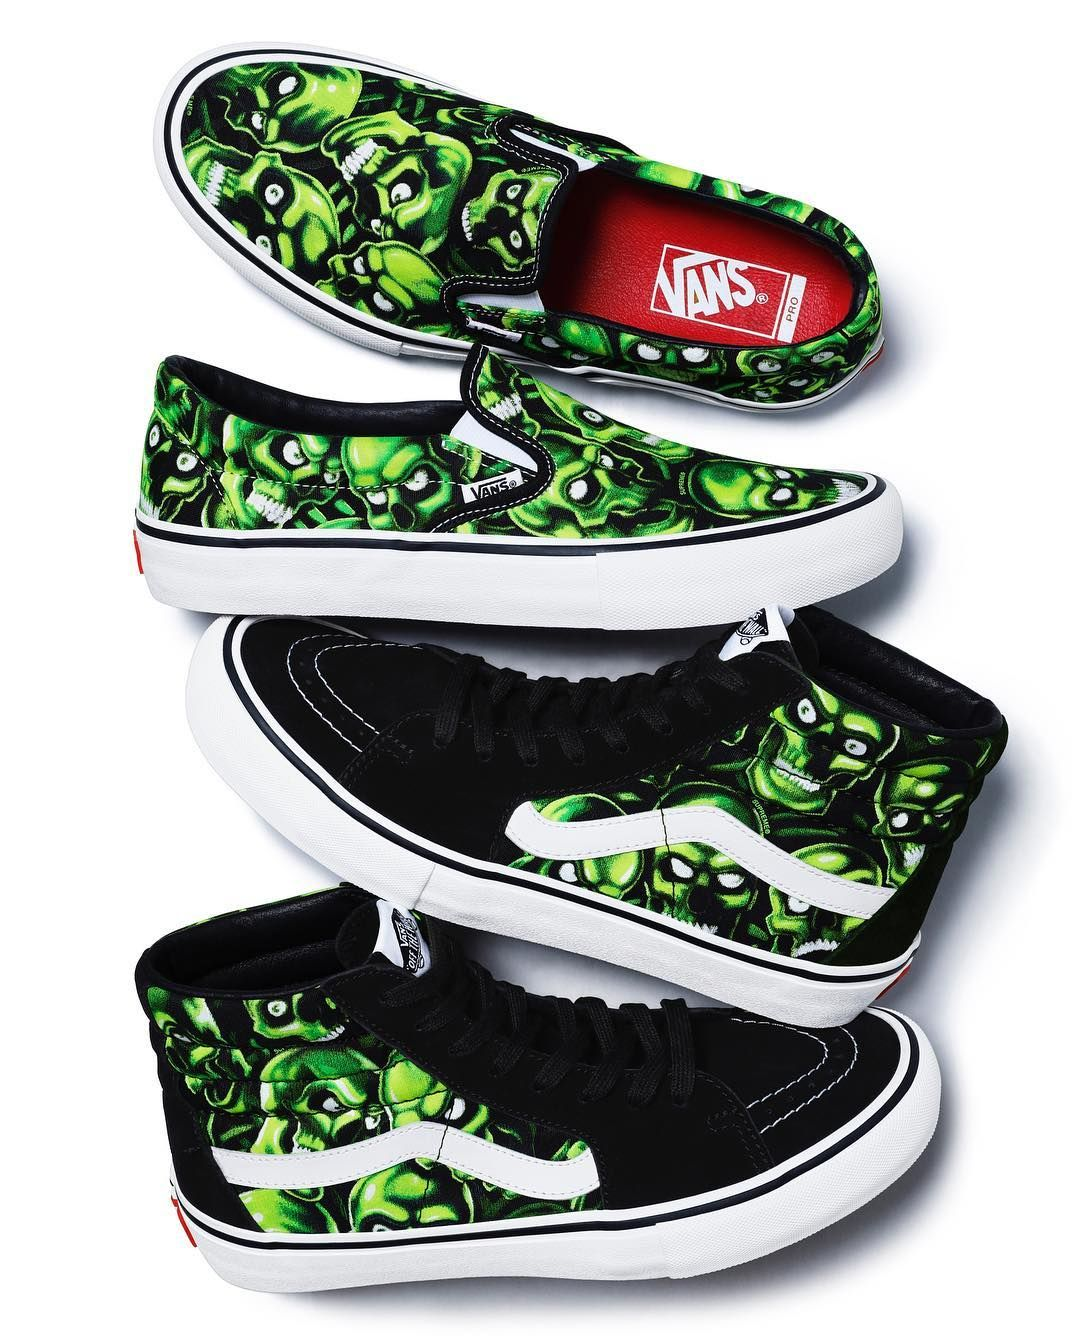 53c4c25e06 Supreme x Vans Glow-in-the-Dark